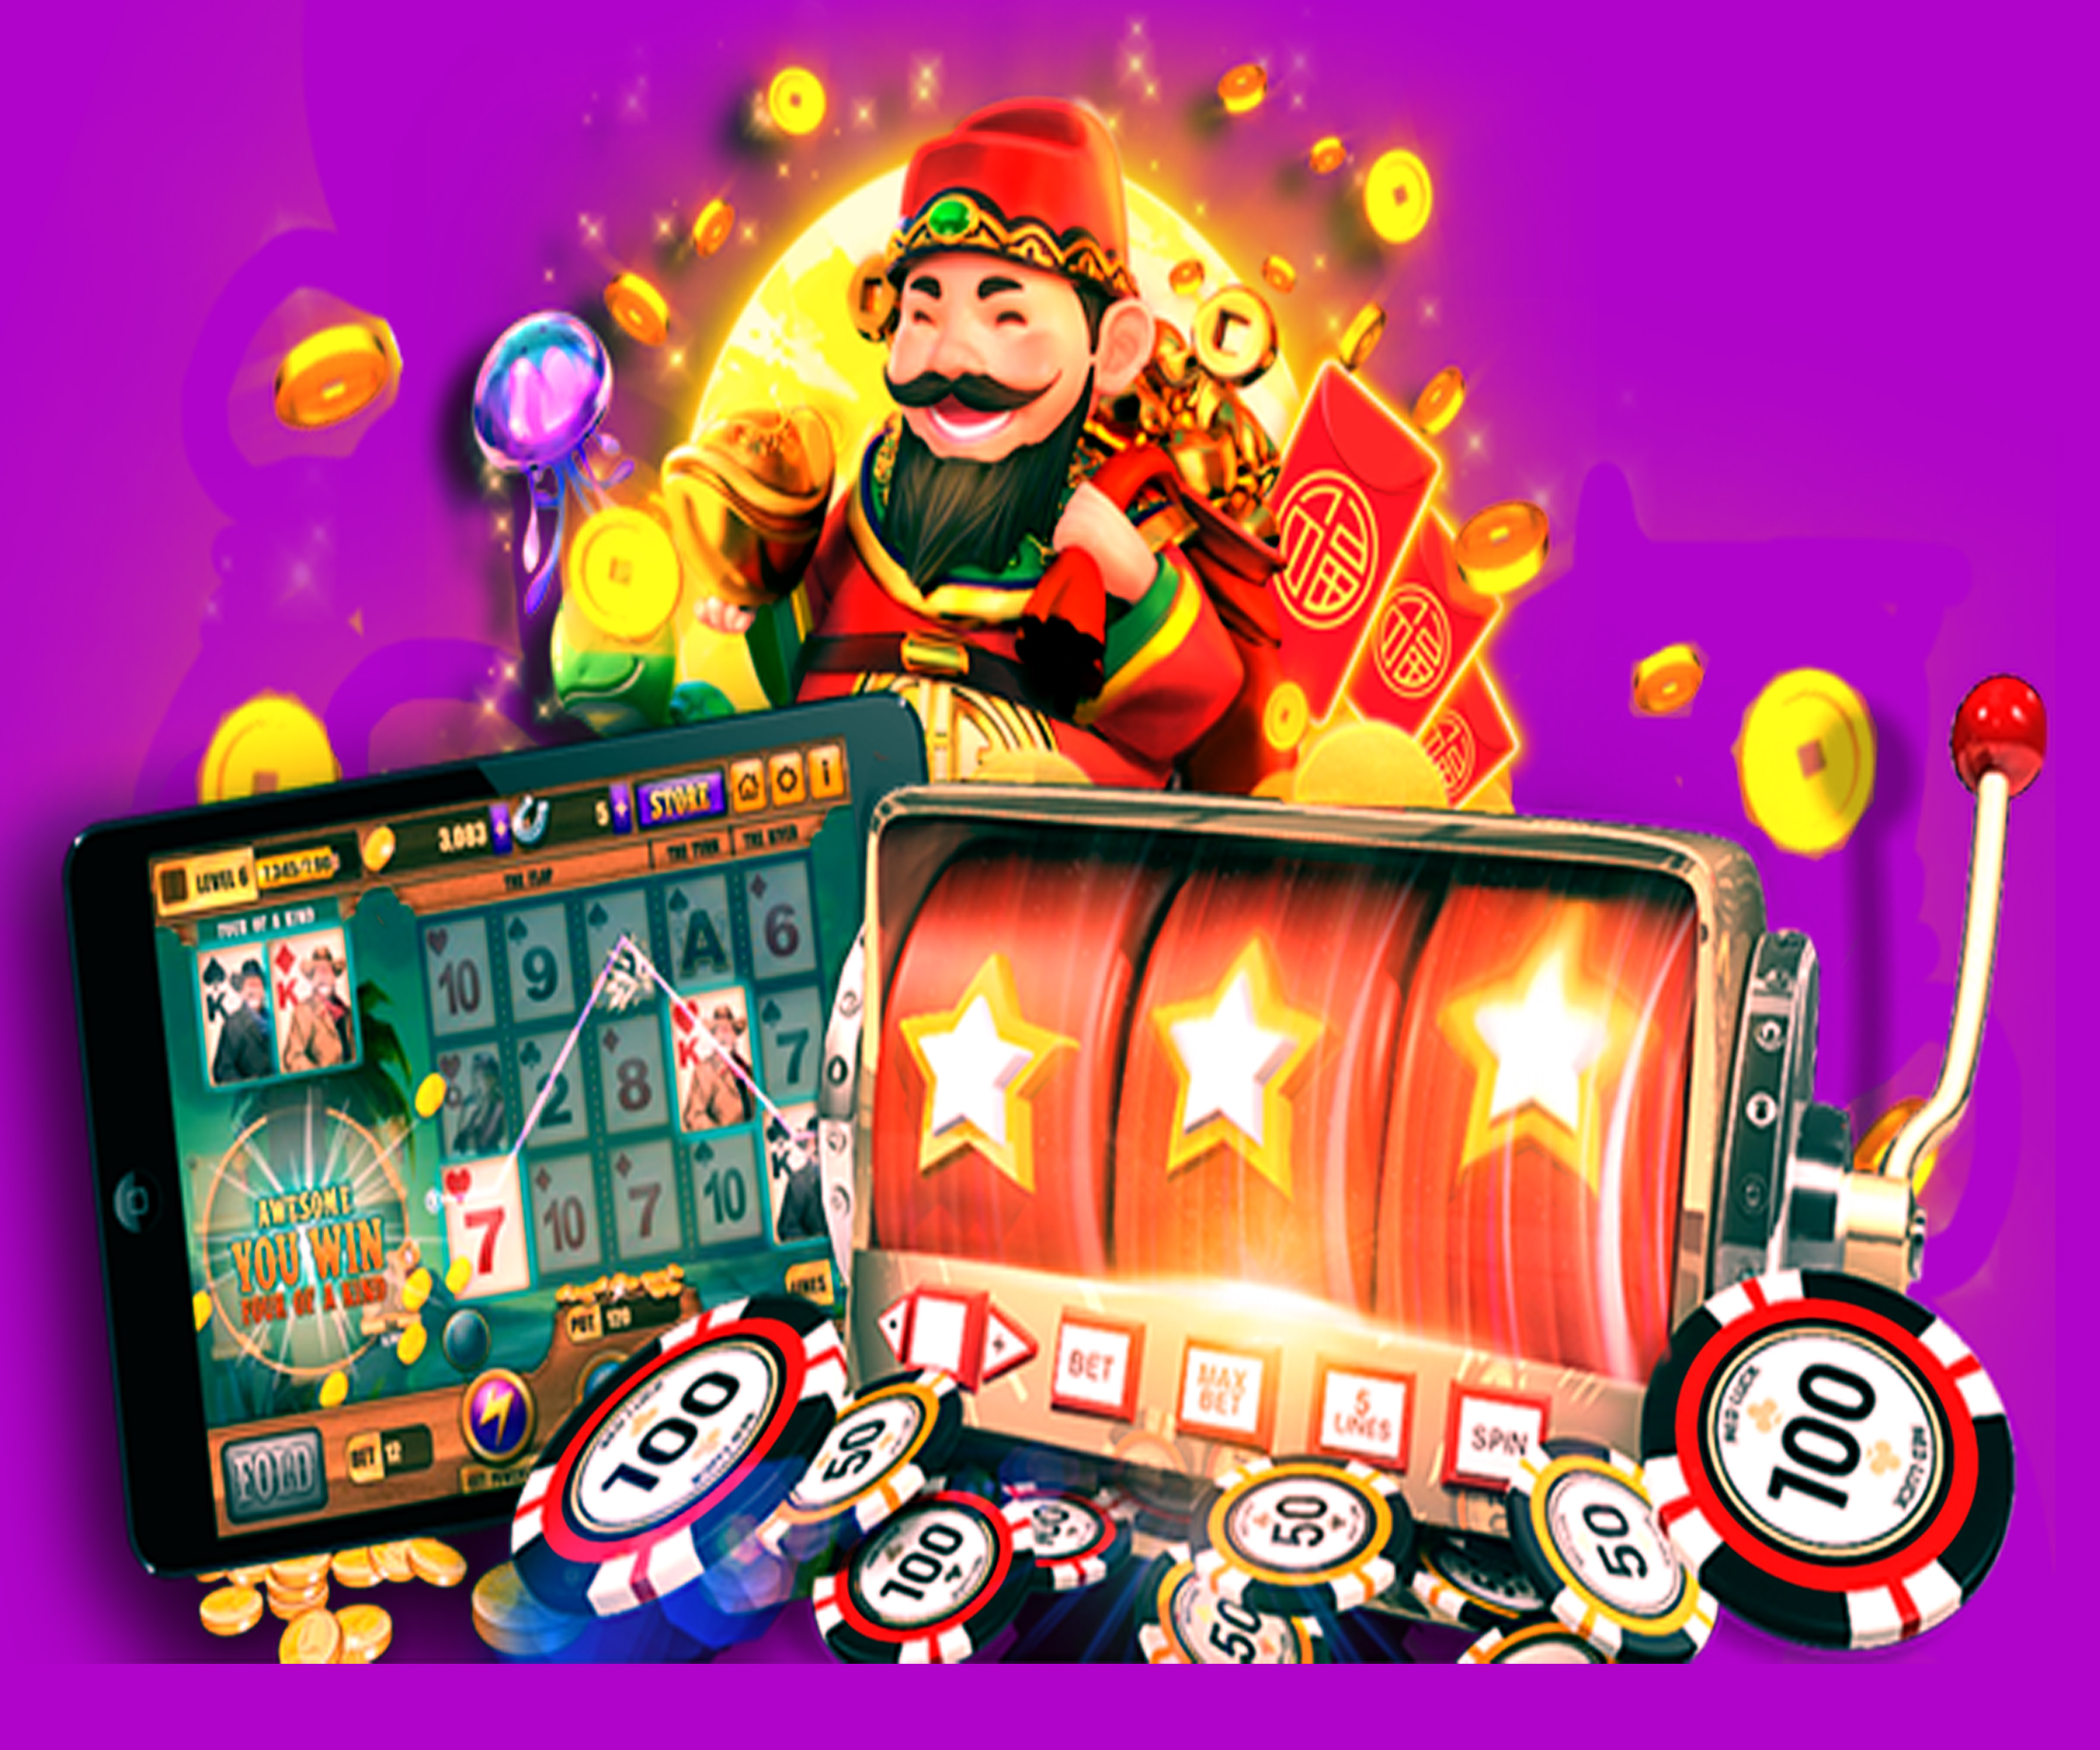 Identifying safer options for playing PG slot machine games online